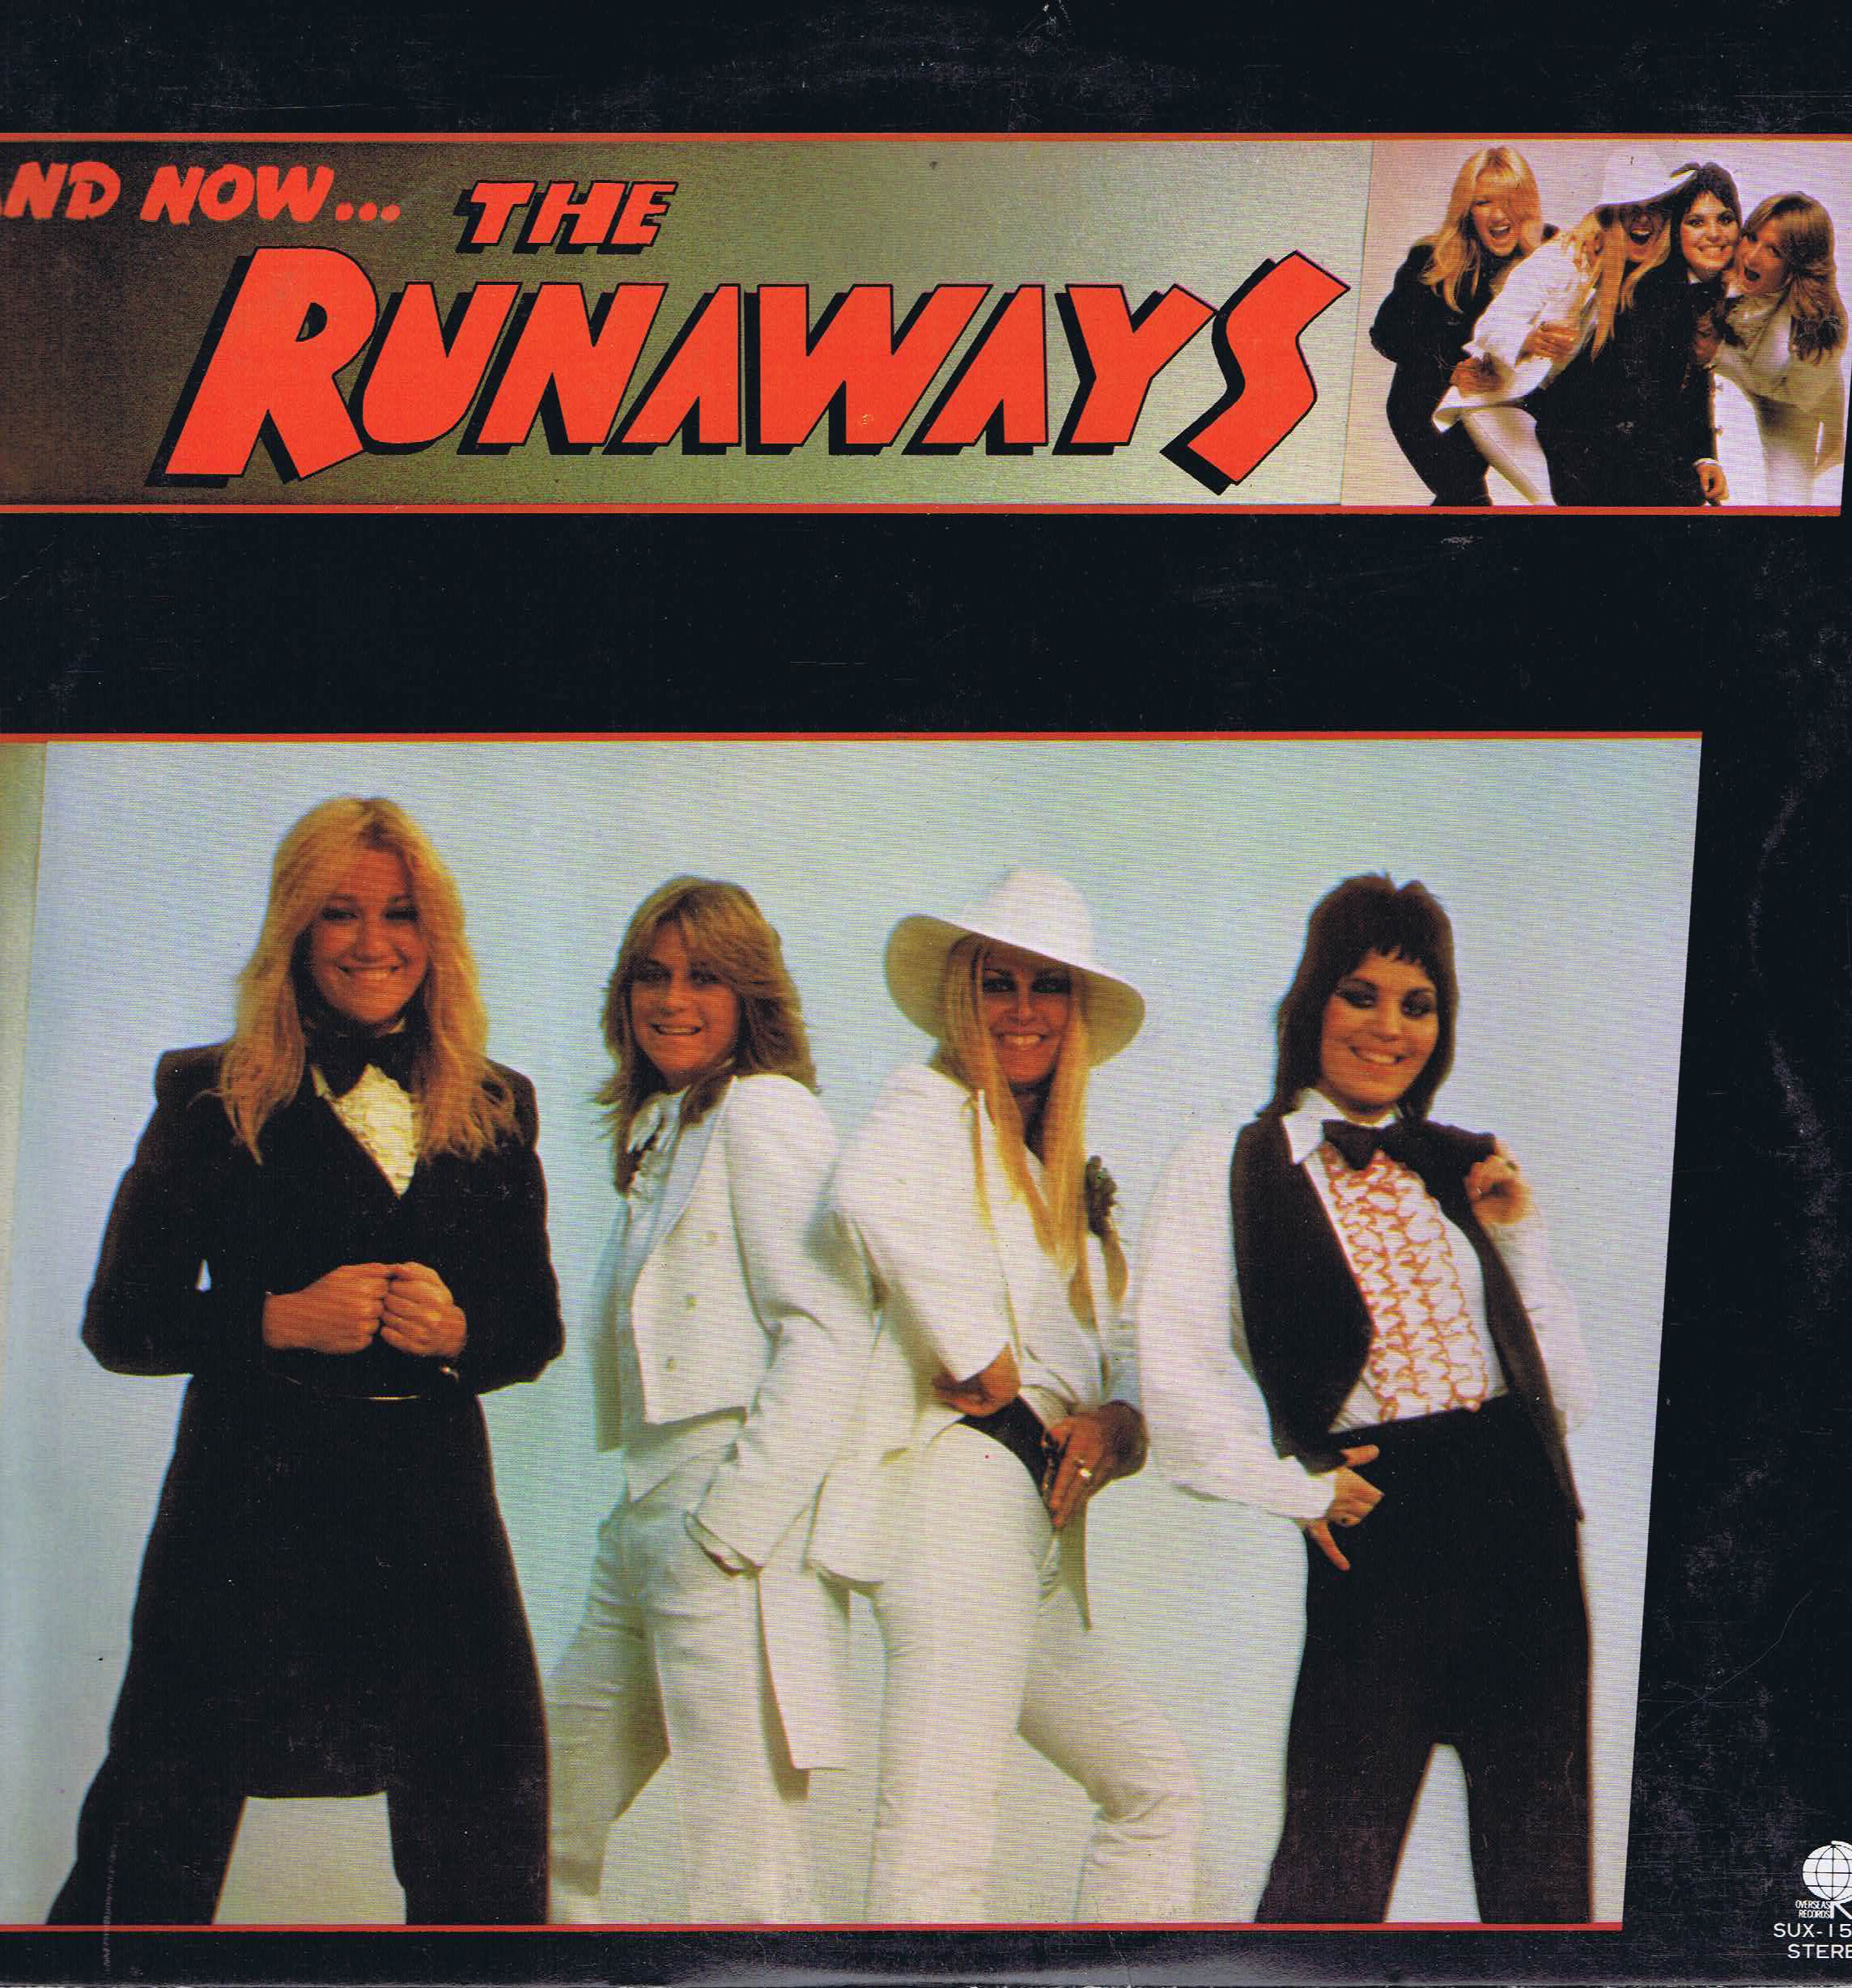 The Runaways And Now The Runaways Rare Japanese